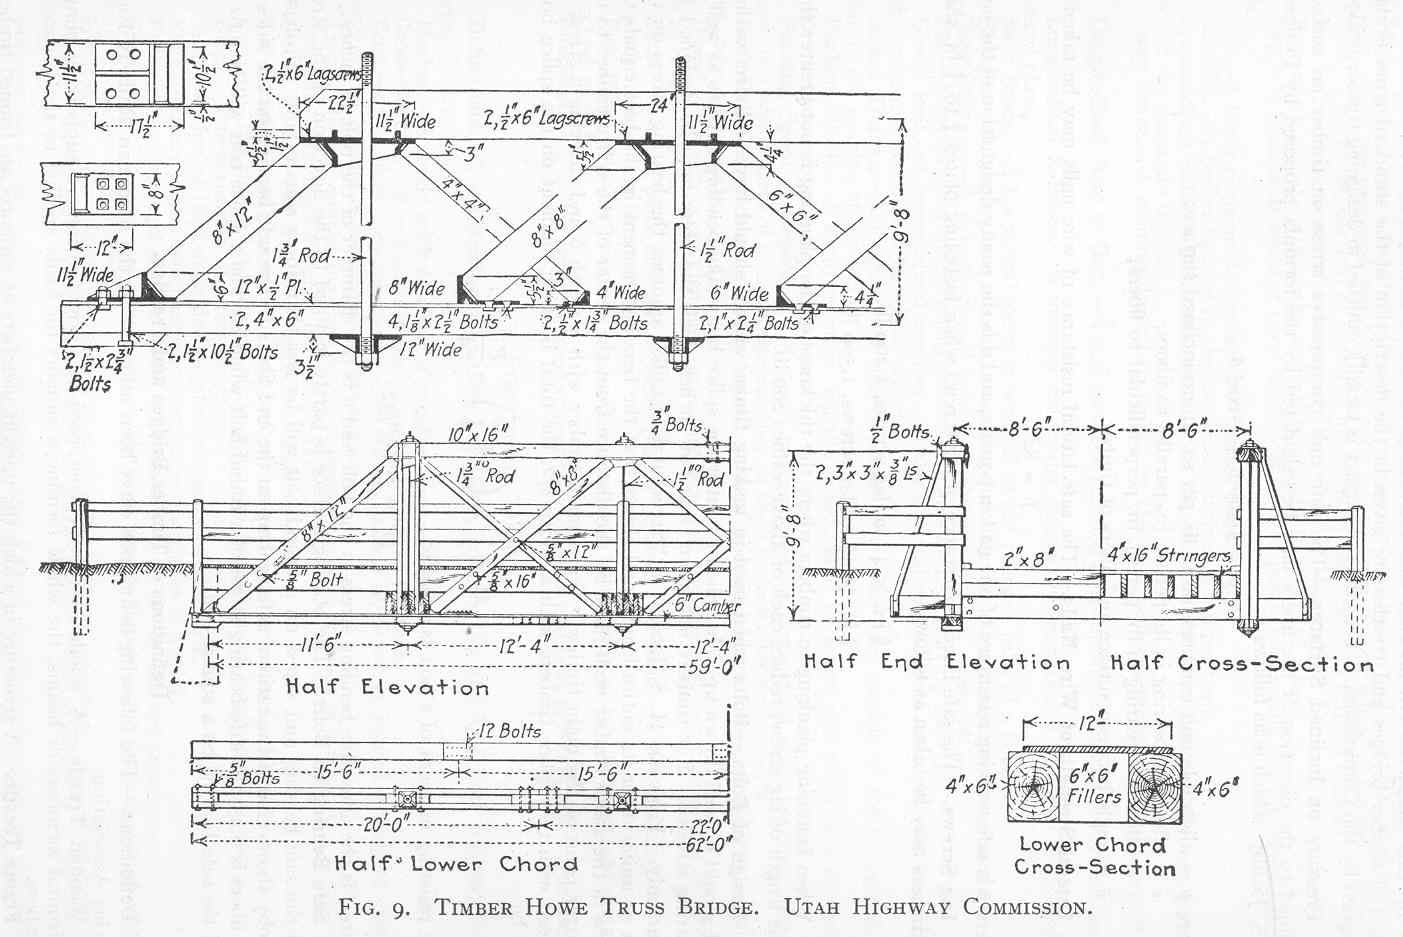 Free Model Railroad Bridge Drawings Plans And Details Of A Timber Howe Pony Truss Model Railway Track Plans Model Trains Train Layouts